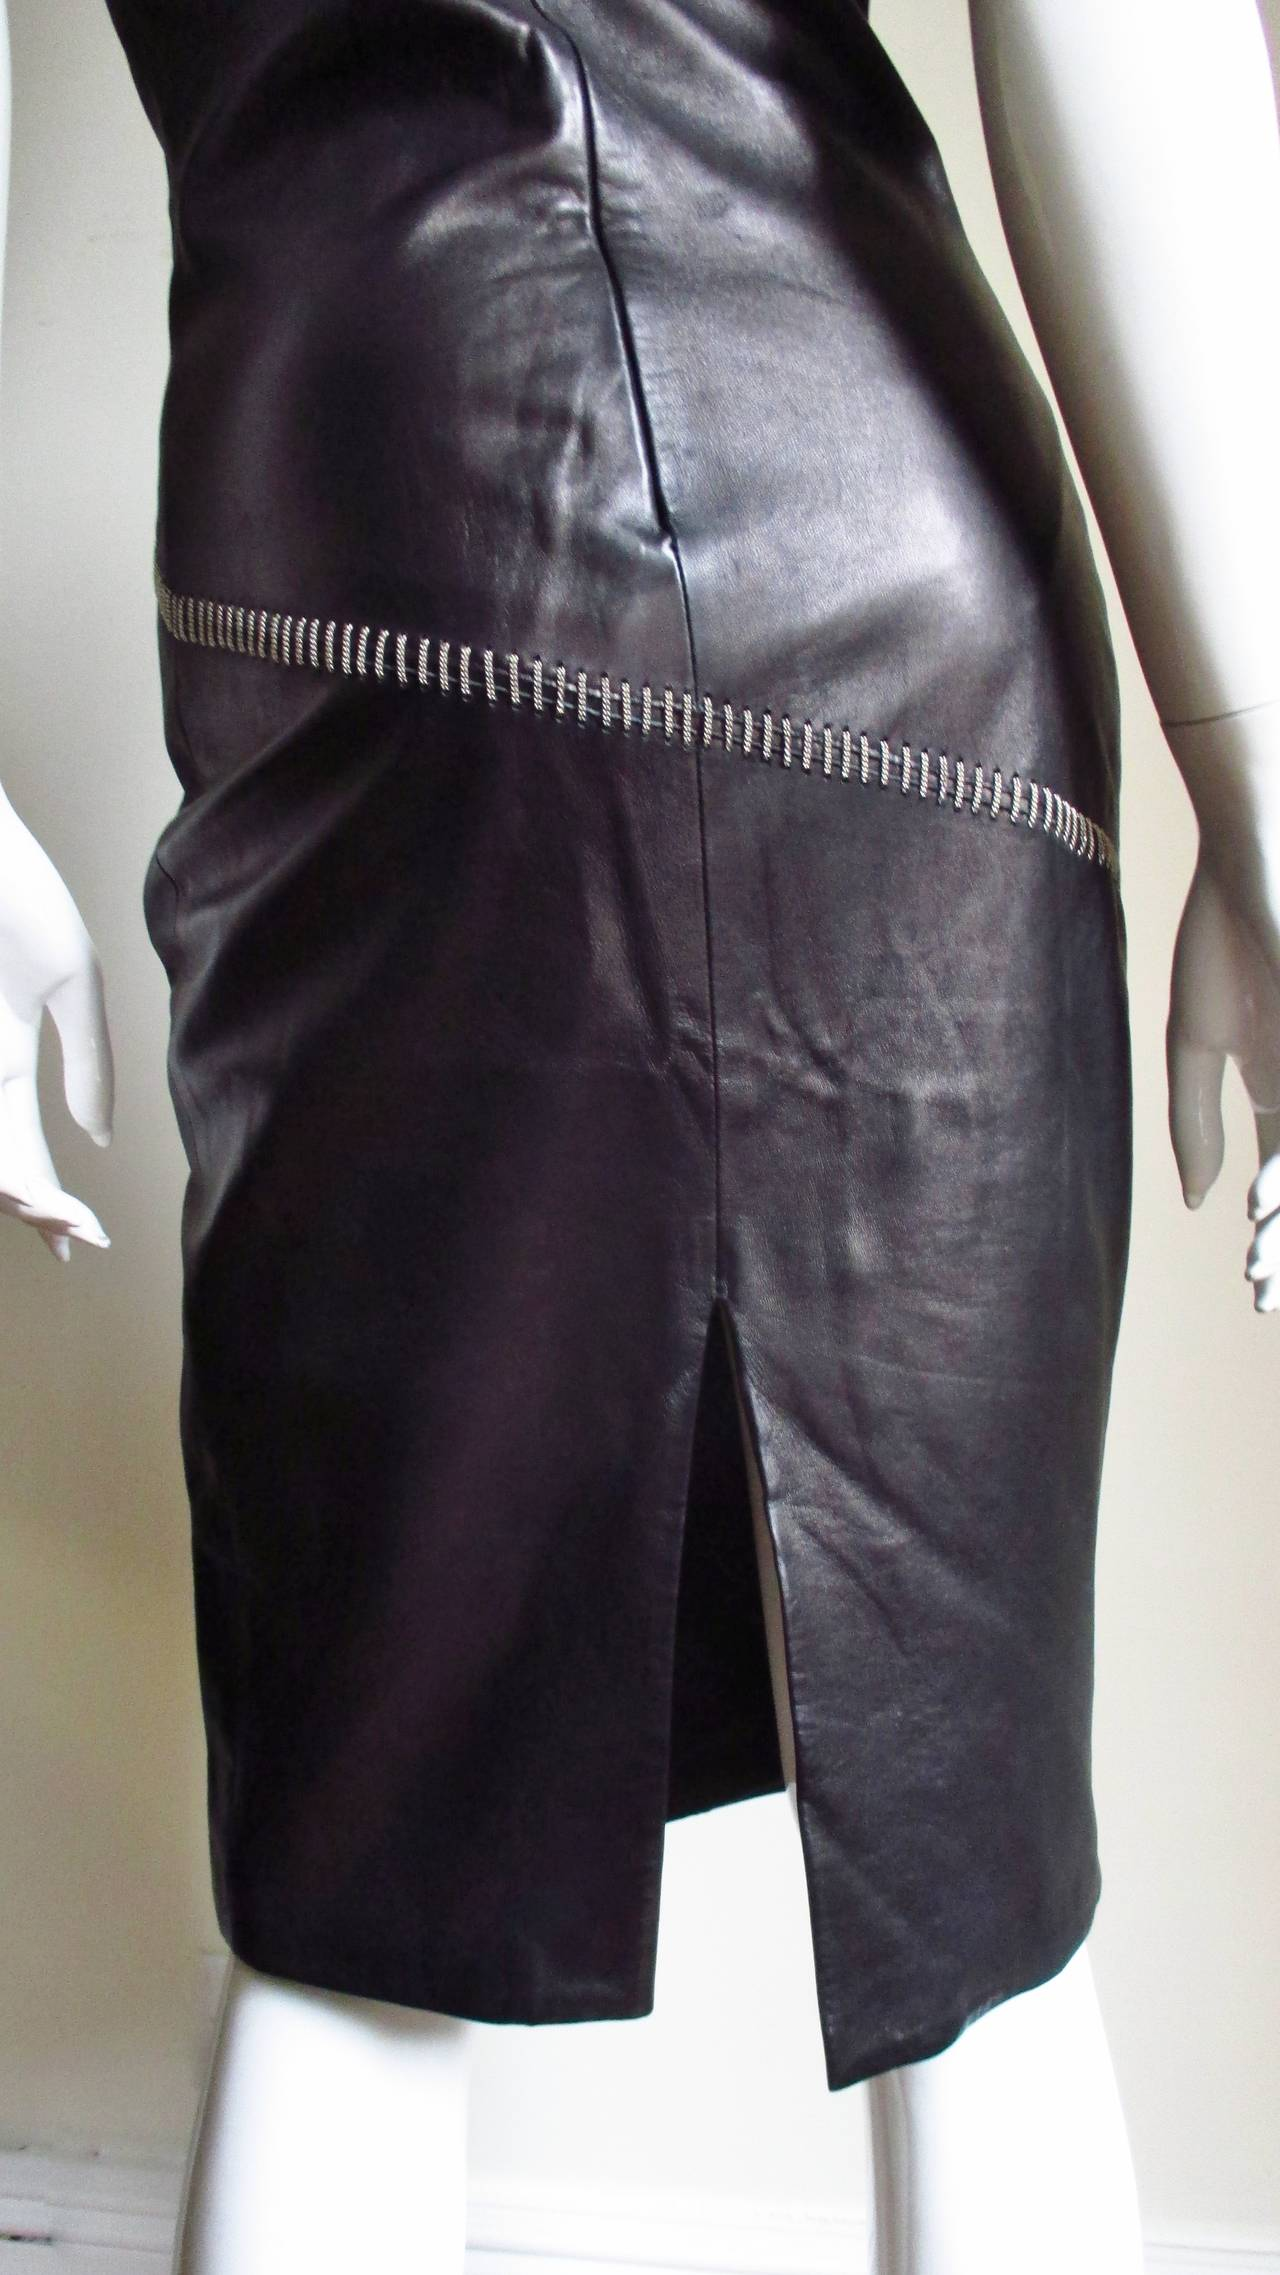 Gianni Versace Leather Dress With Chains 8